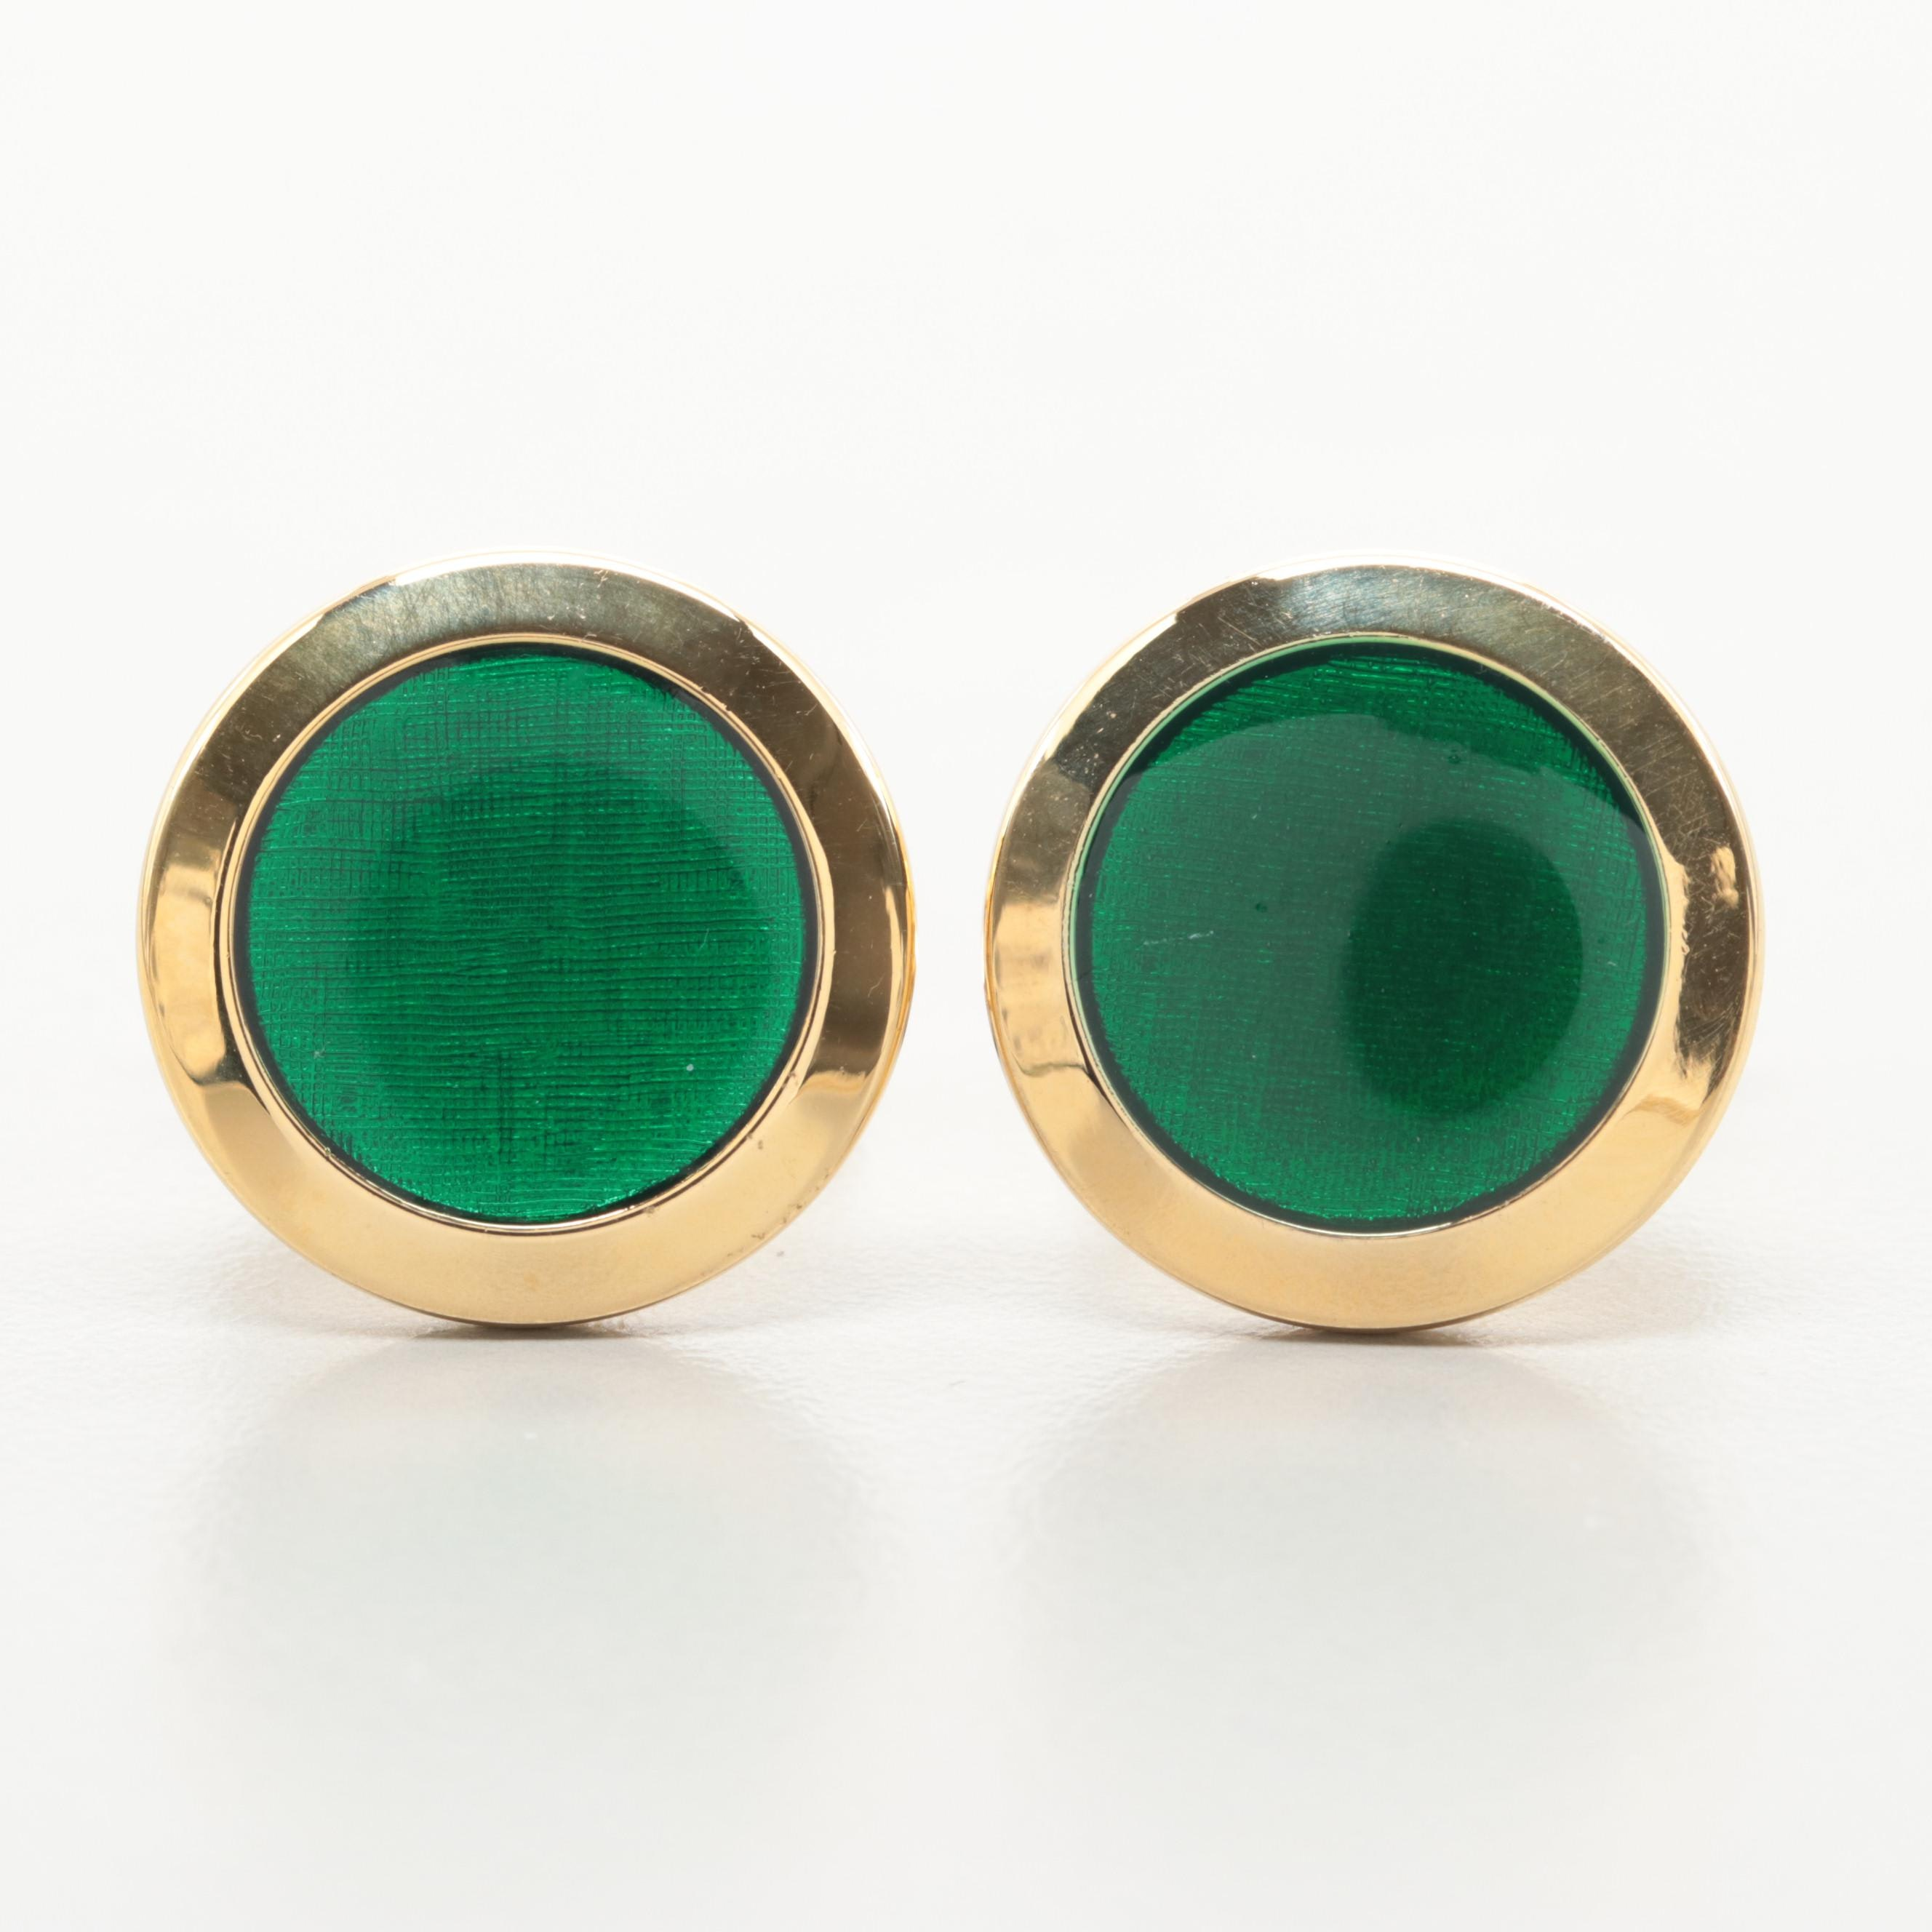 Gold Tone Green Enamel Cuff Links